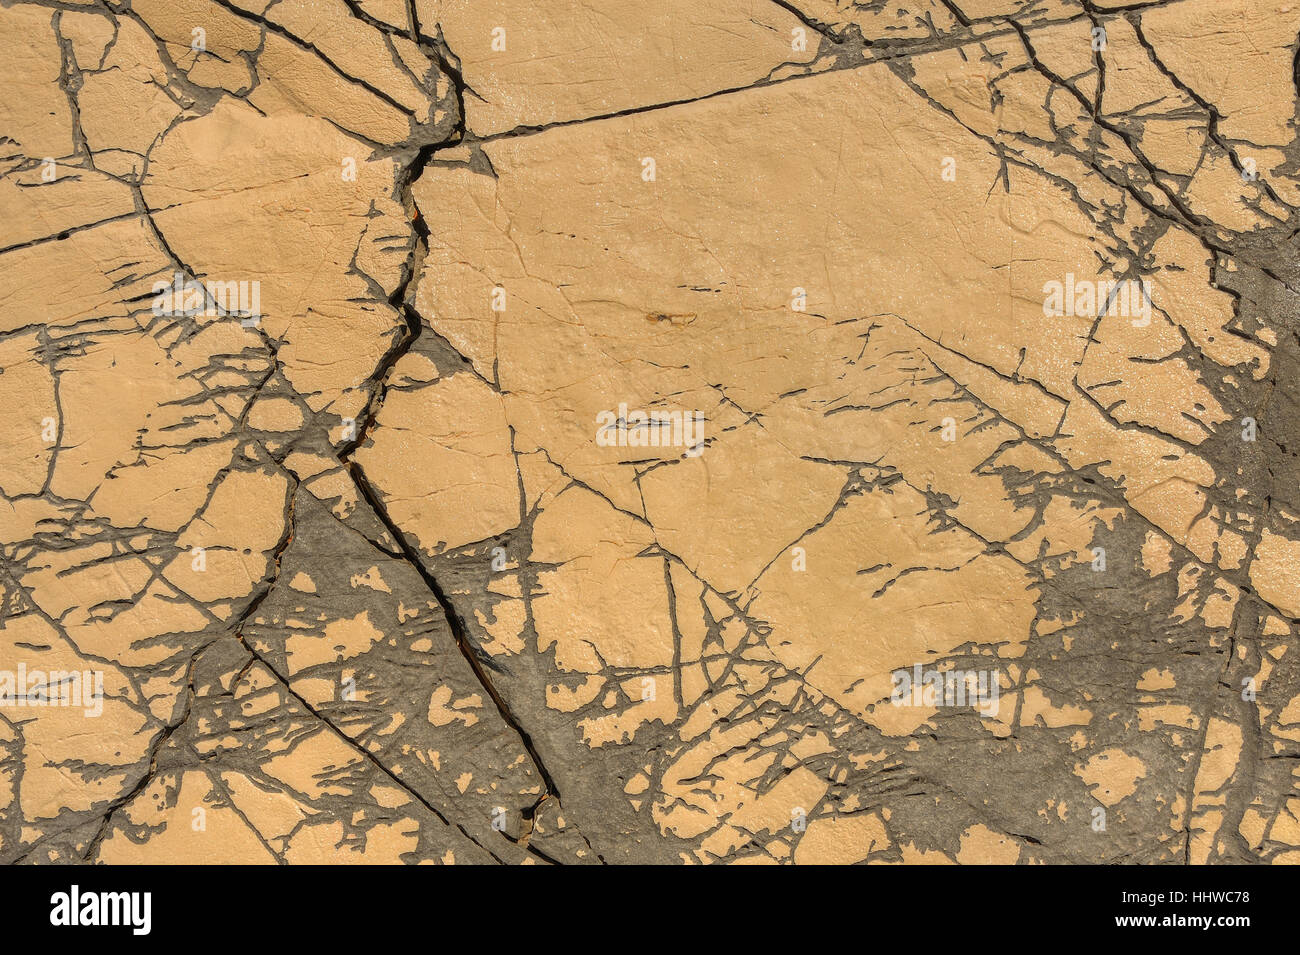 detail, stone, crack, limestone, pattern, fissured, cracked, fissure, backdrop, Stock Photo